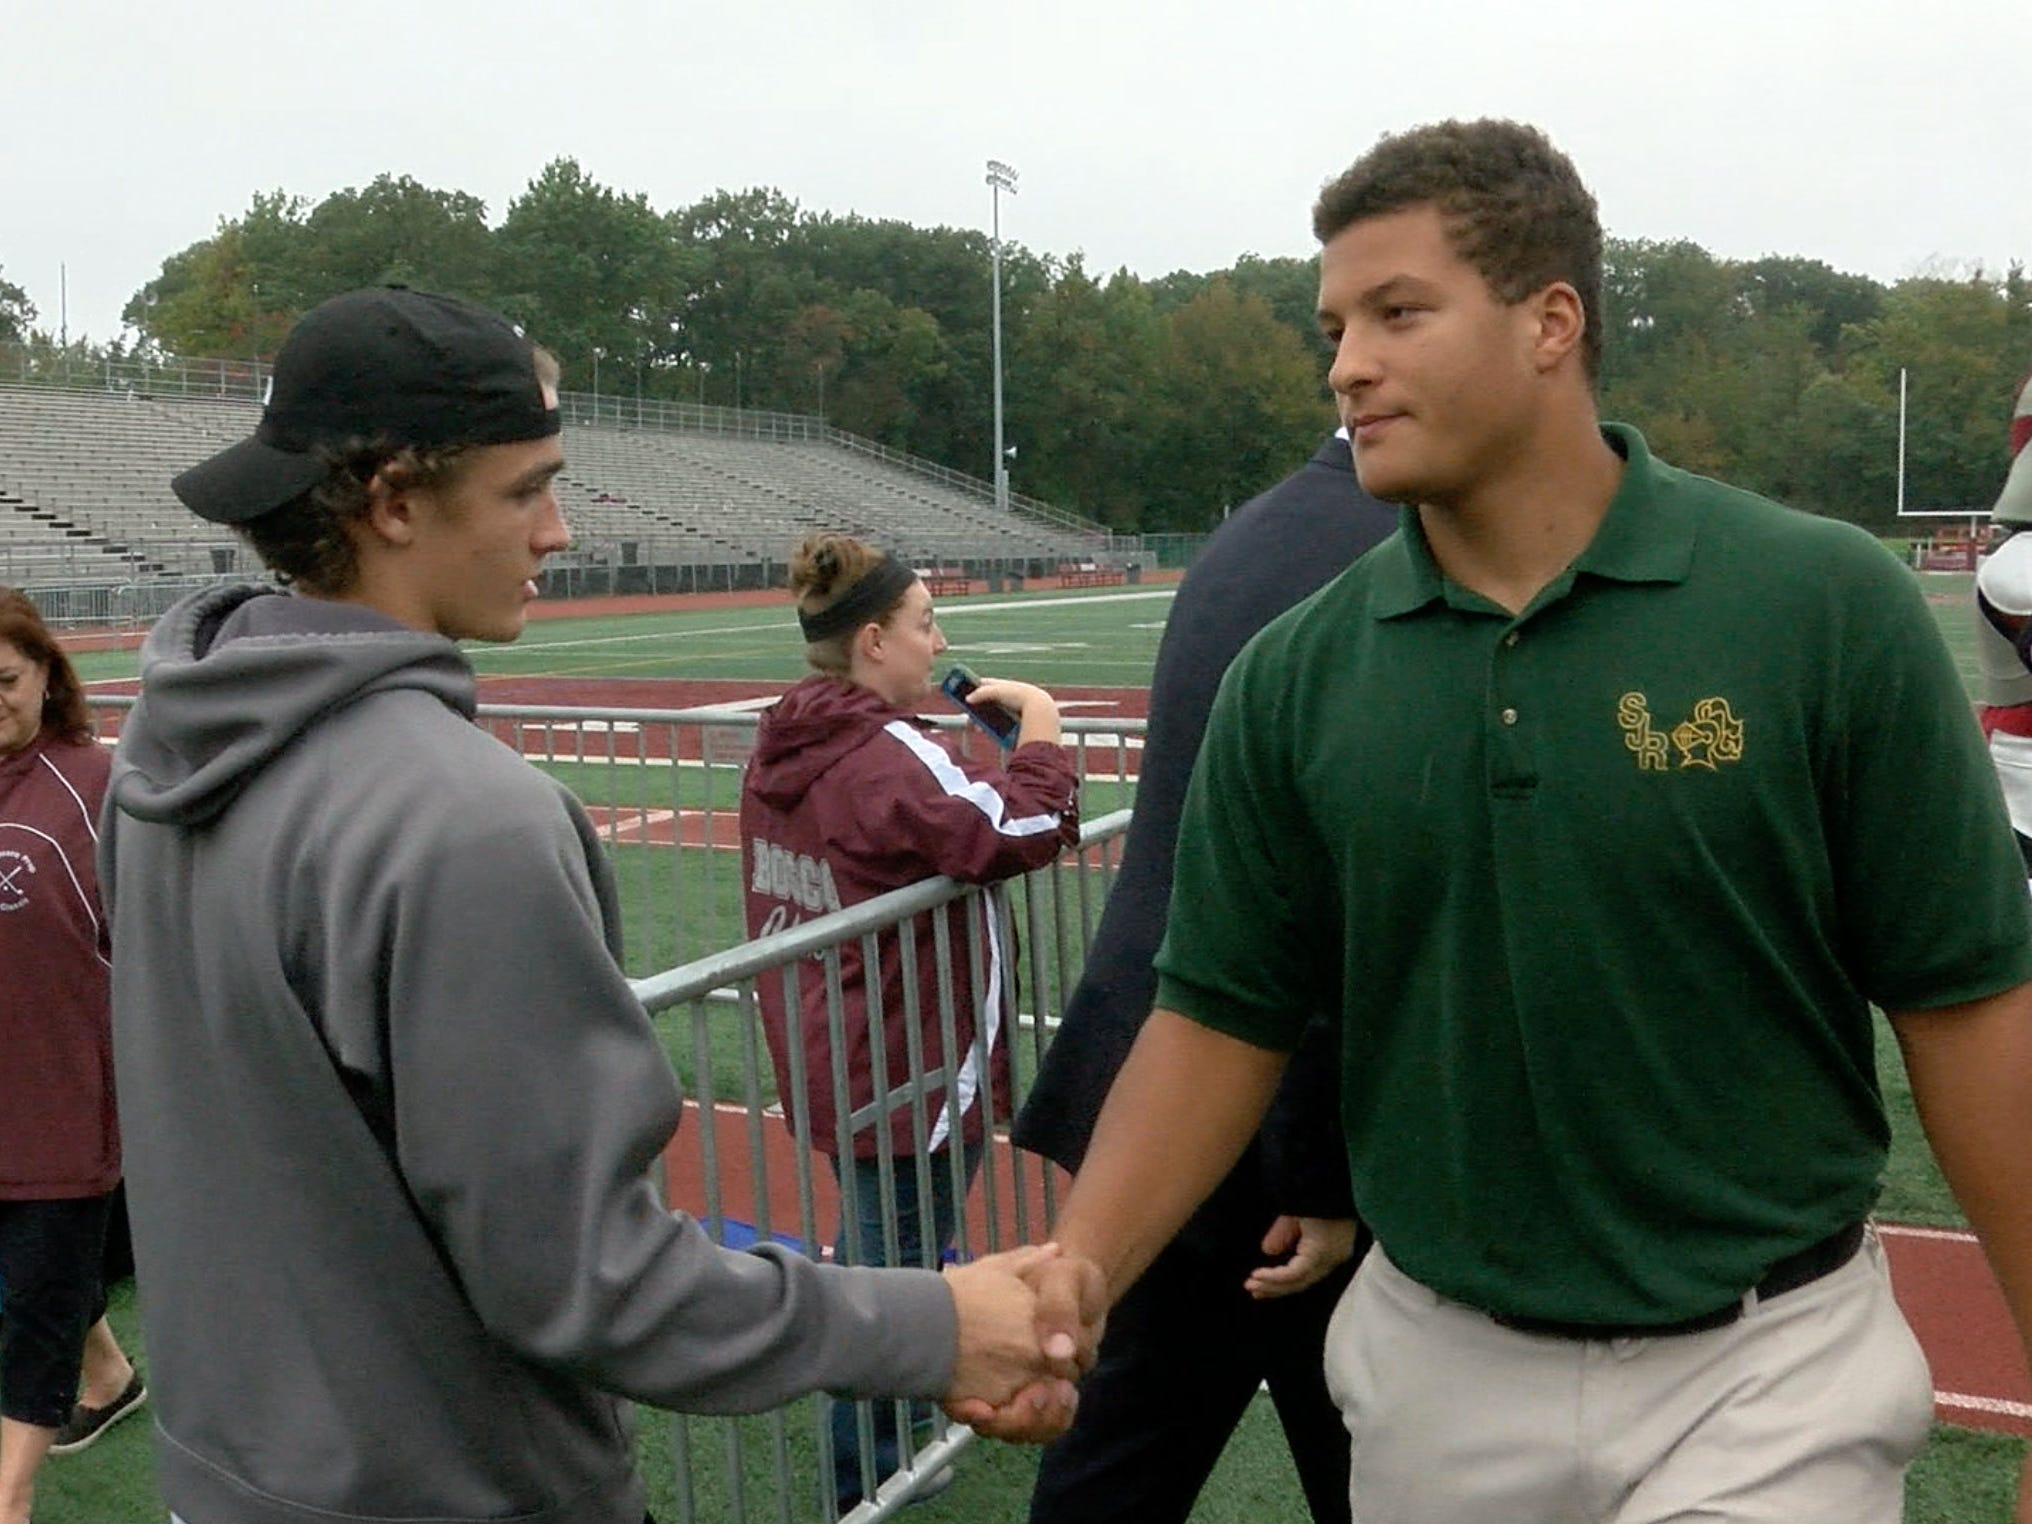 St. Joe's defensive lineman Howard Cross (right) shakes hands with Don Bosco wide receiver Christian Dremel during a break in the Red Zone Road Show shot at Don Bosco Prep Monday October 8, 2018.